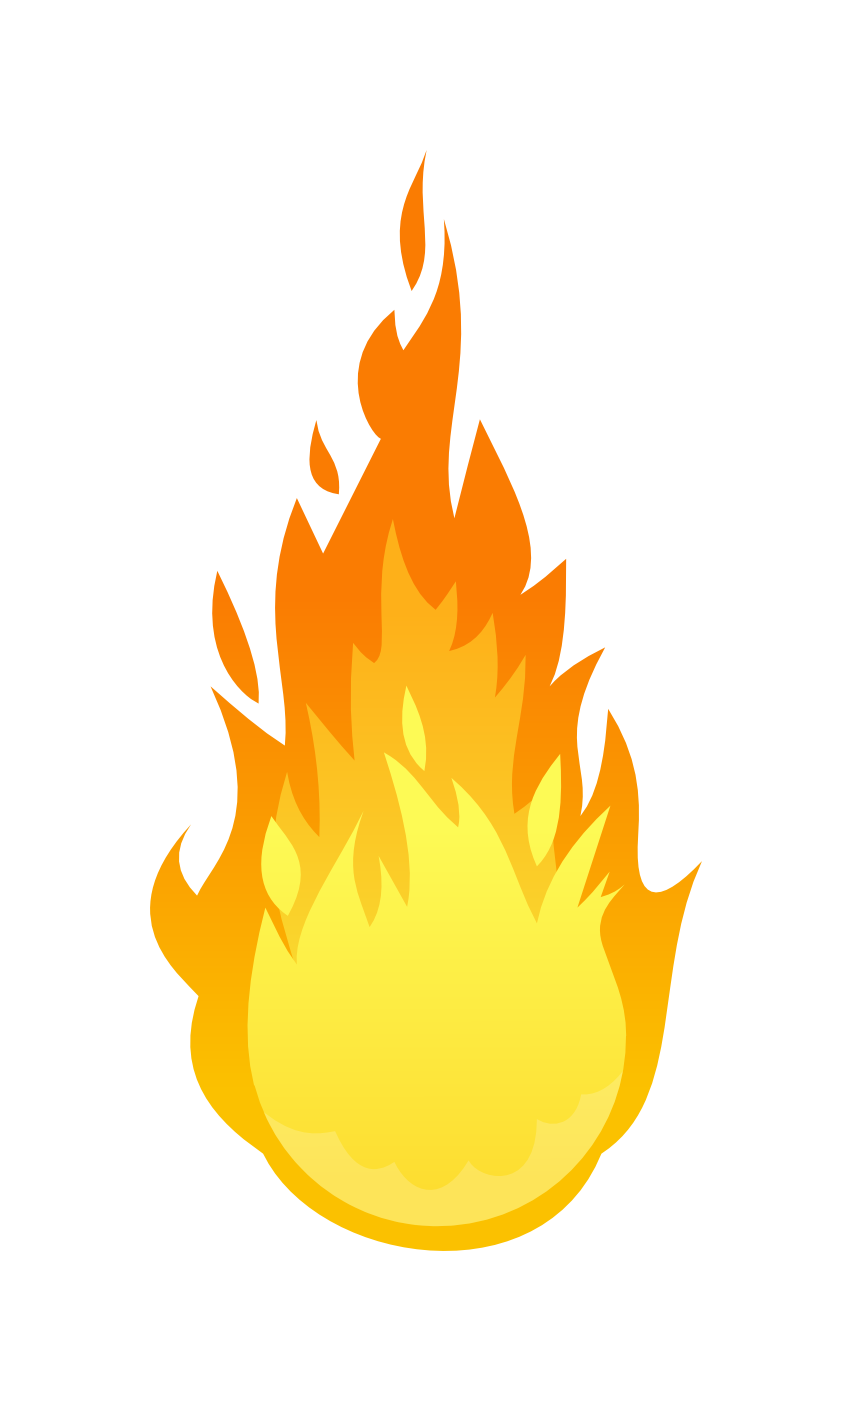 Flaming maltese cross clipart. Collection of free gire